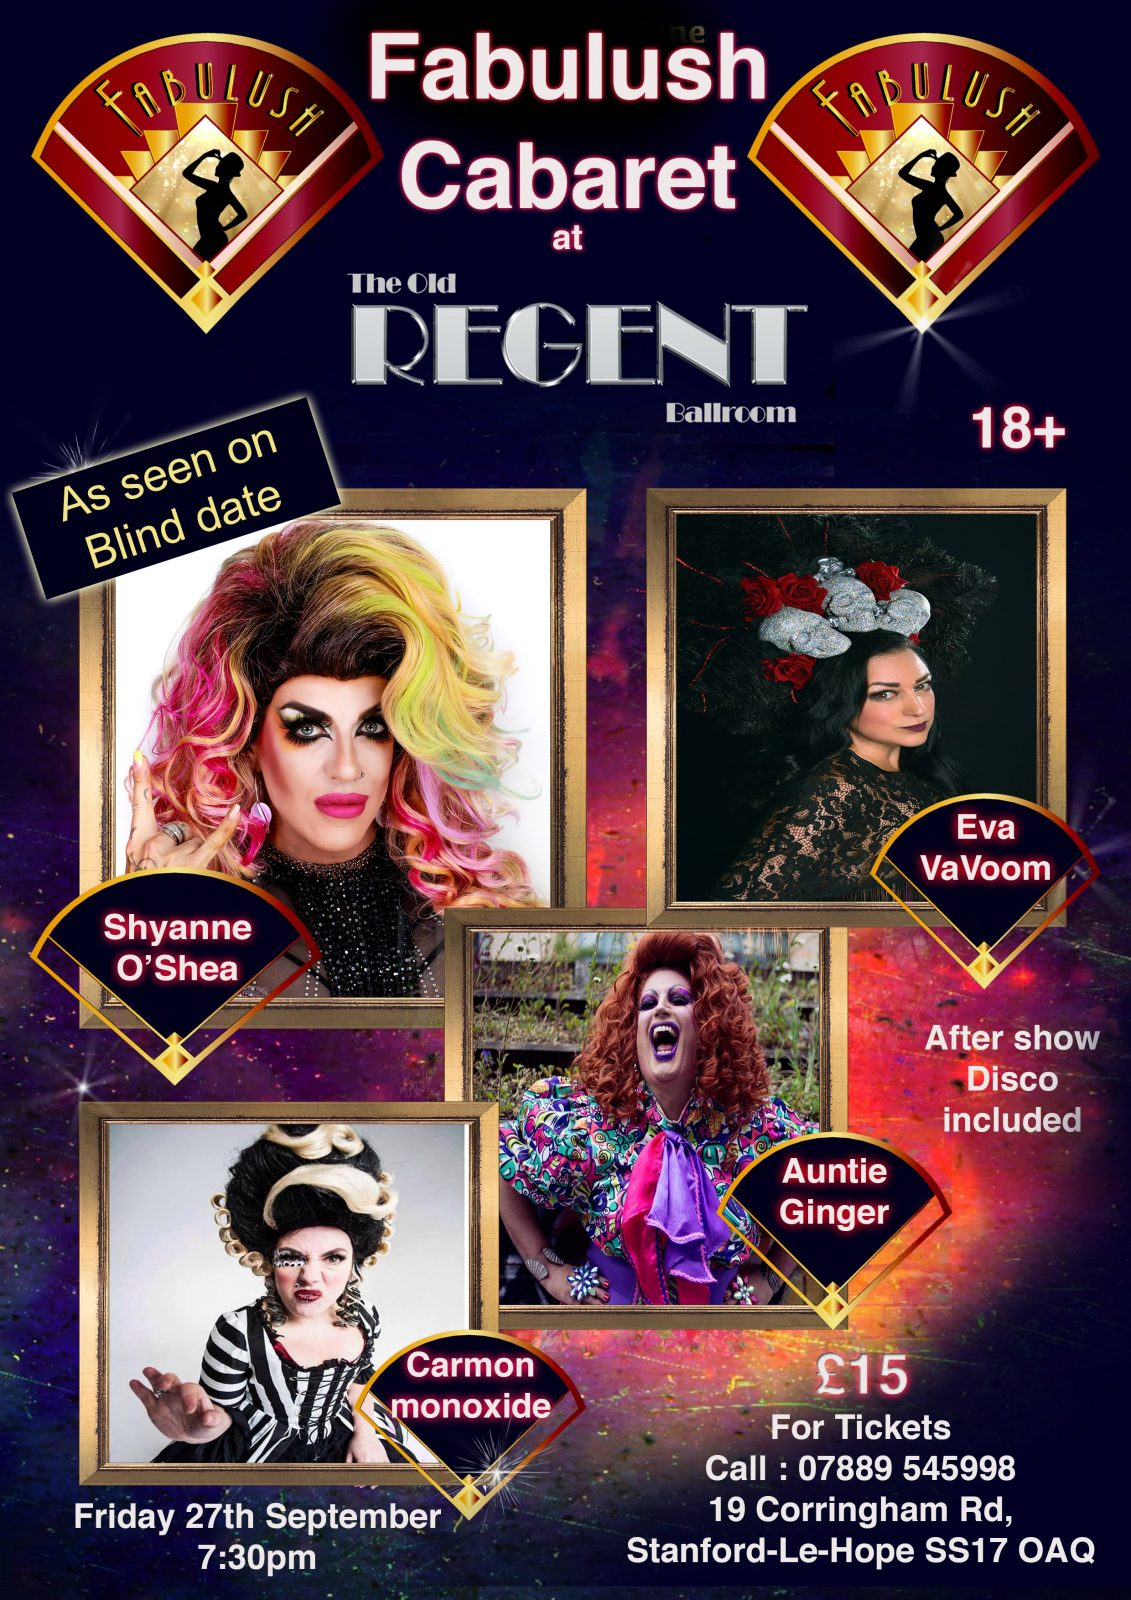 Fabulush Cabaret with Shyanne O Shea and guests 27th September 2019 @ The Old Regent